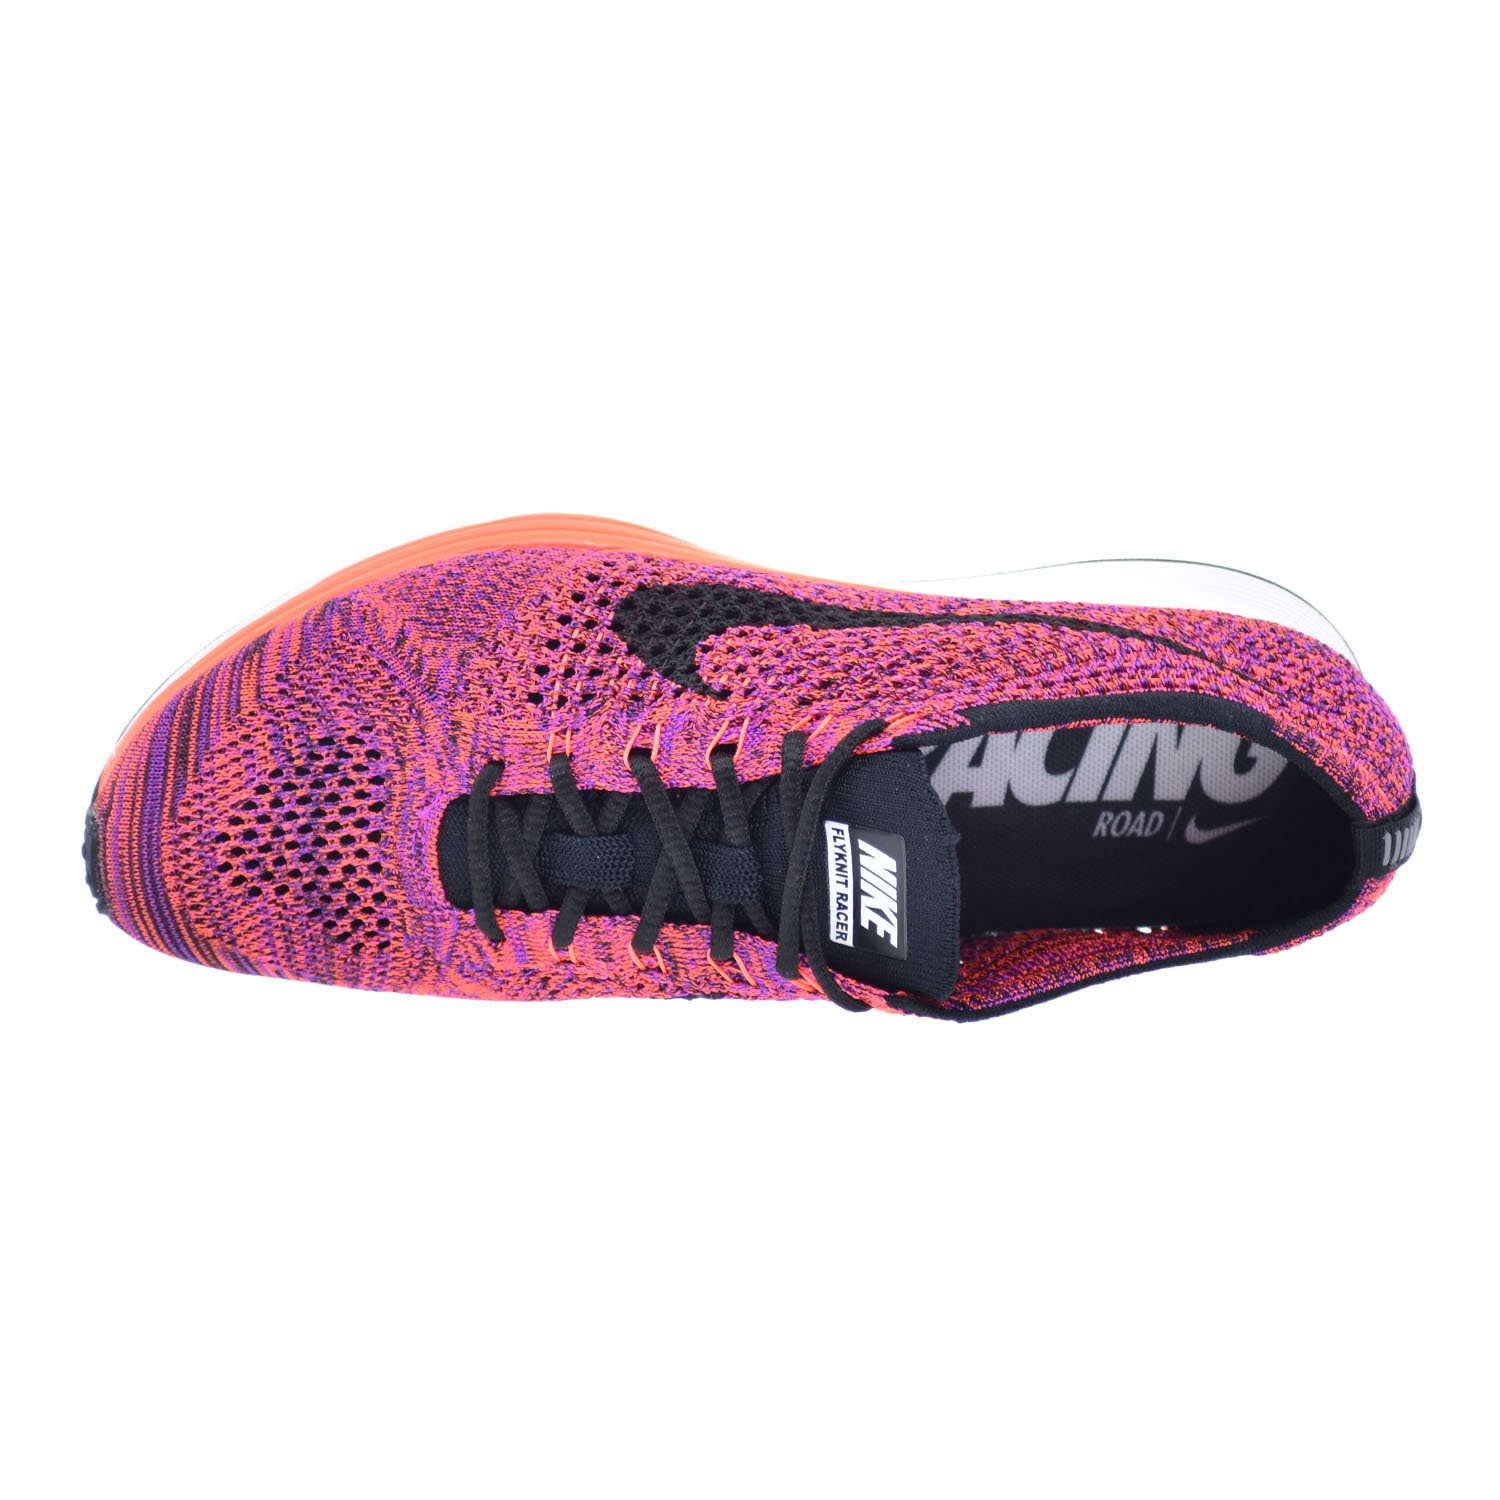 reputable site 32e79 0f1dc Amazon.com  Nike Flyknit Racer Mens Shoes BlackBlack-Hypr Orng-VVD Prpl  526628-008 (10.5 D(M) US)  Road Running